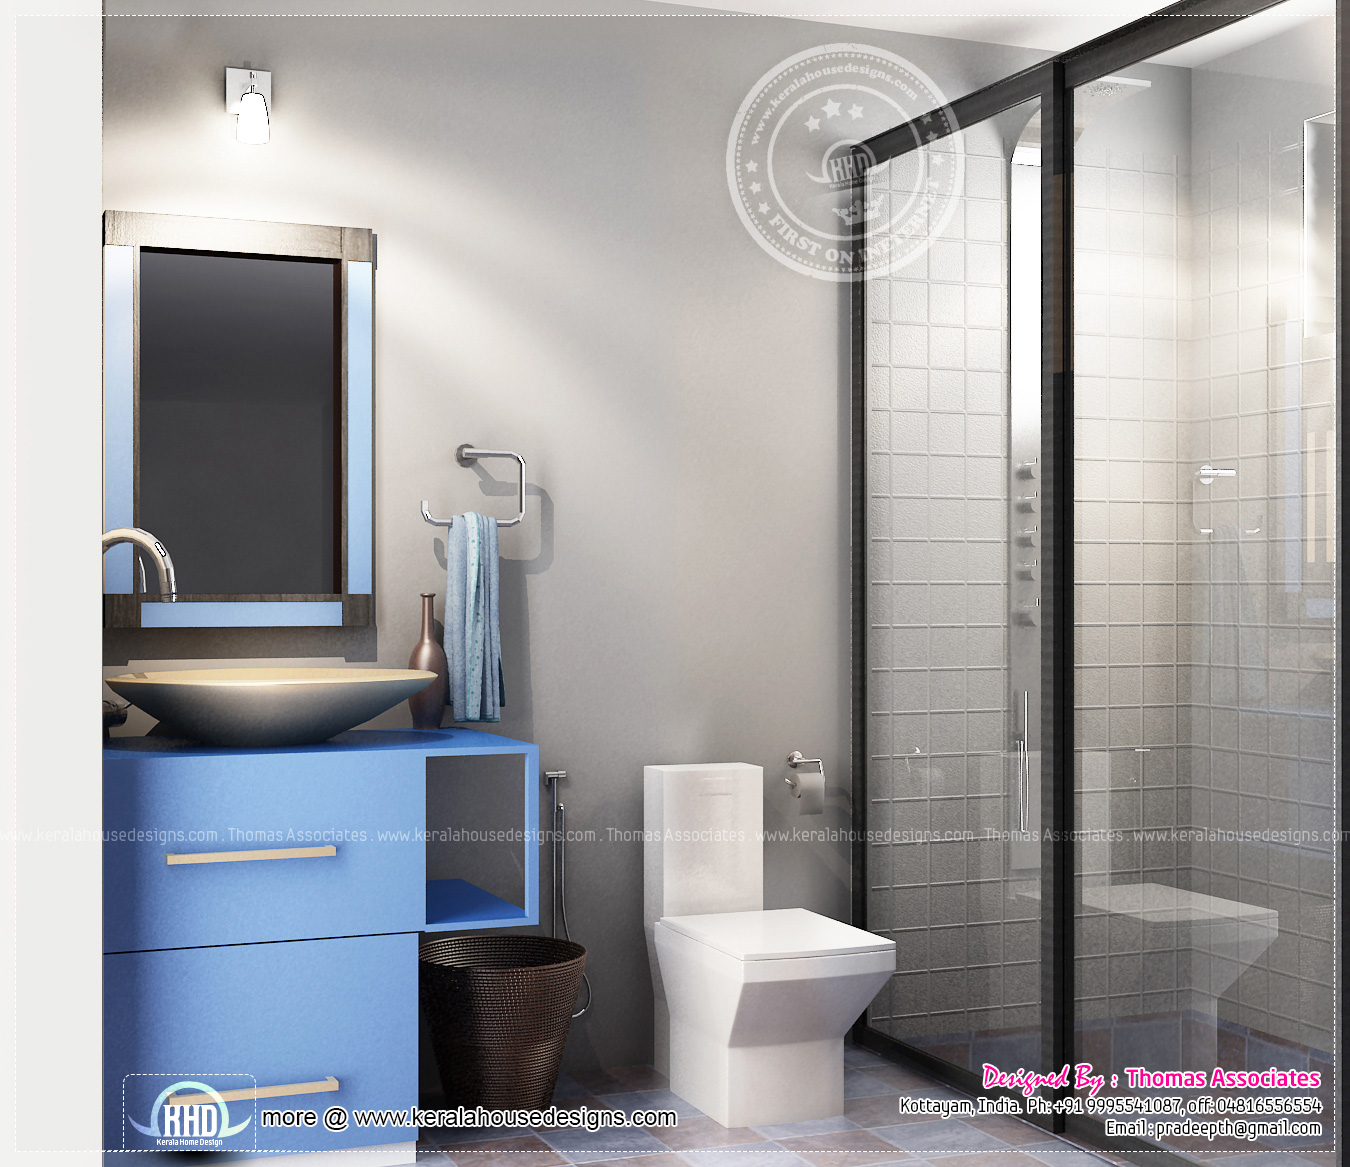 852 Bathtub Data Base Emails Contact Us Hk Mail: Beautiful Blue Toned Interior Designs